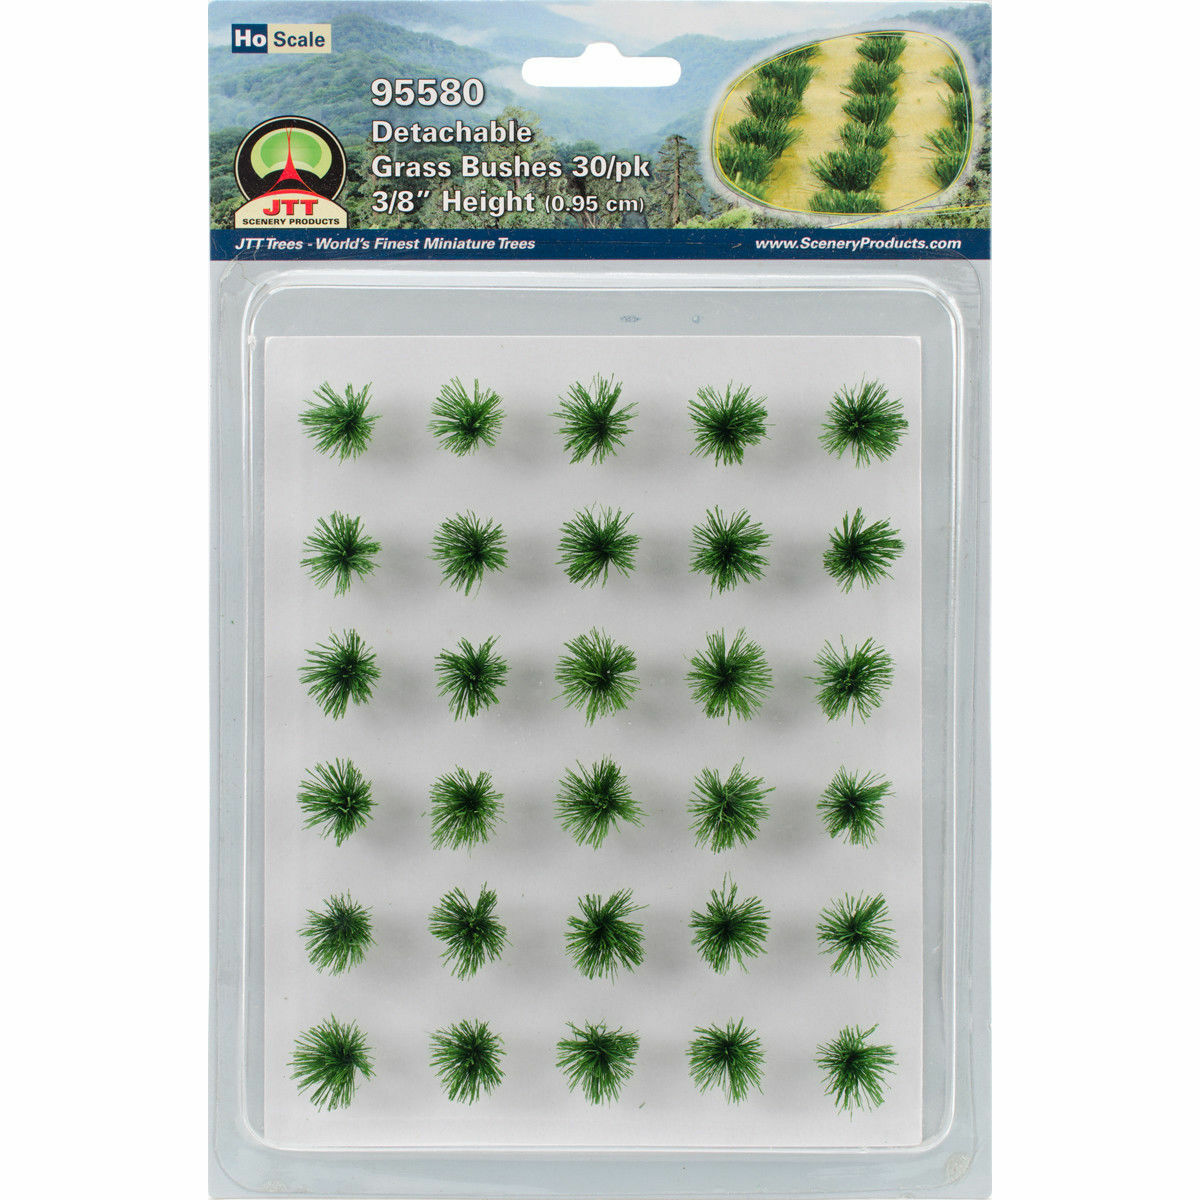 JTT HO Scale Detachable Grass Bushes 3/8